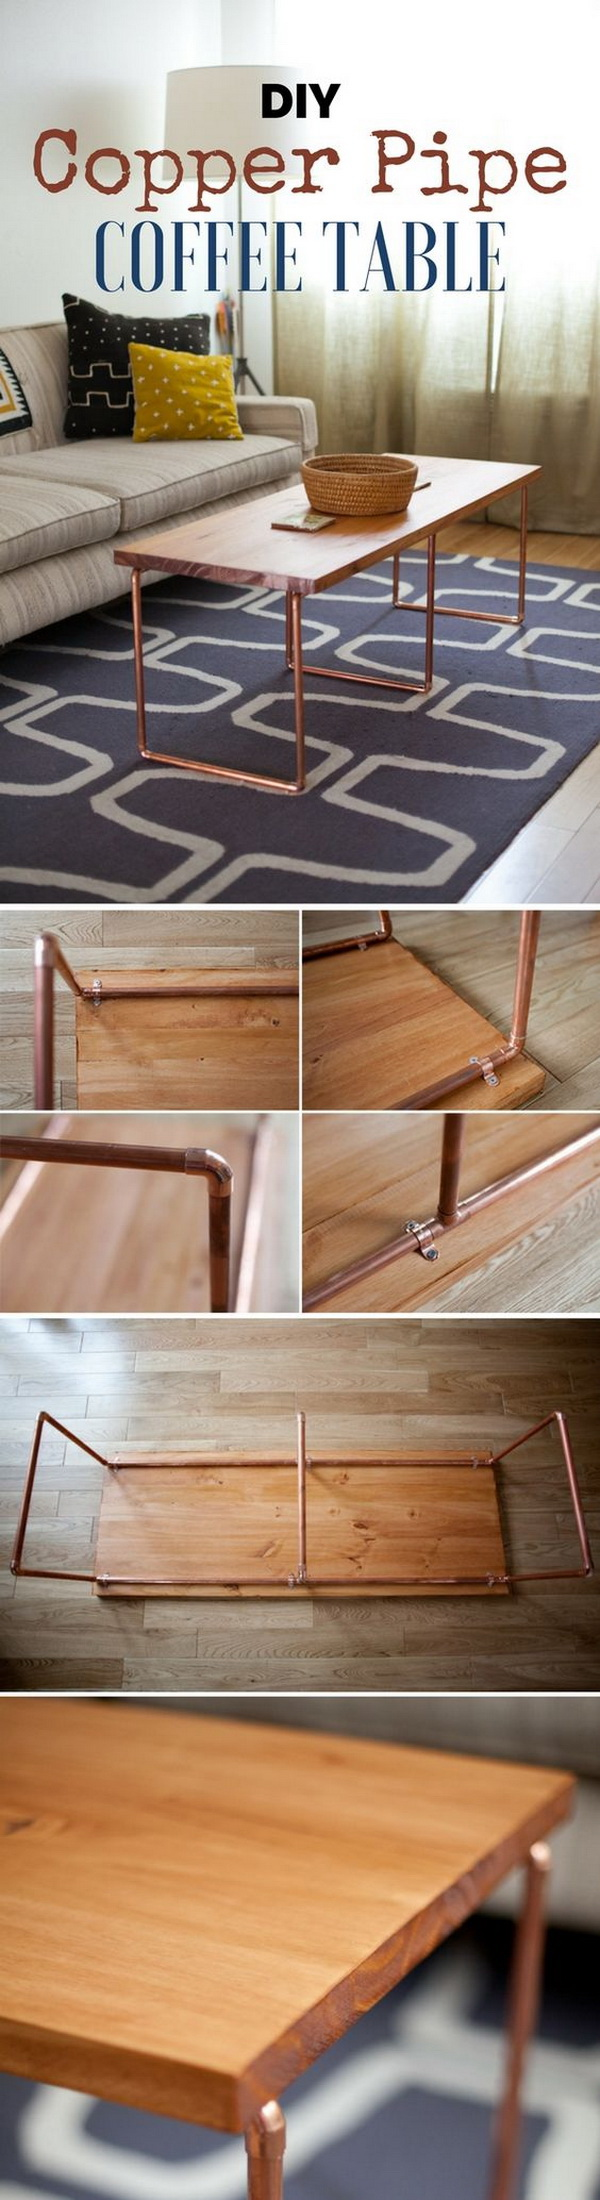 DIY Copper Pipe Coffee Table. Make this wonderful coffee table with some copper pipe and a wooden board to add a brilliant, bright and shiny accent to your industrial style home decor!